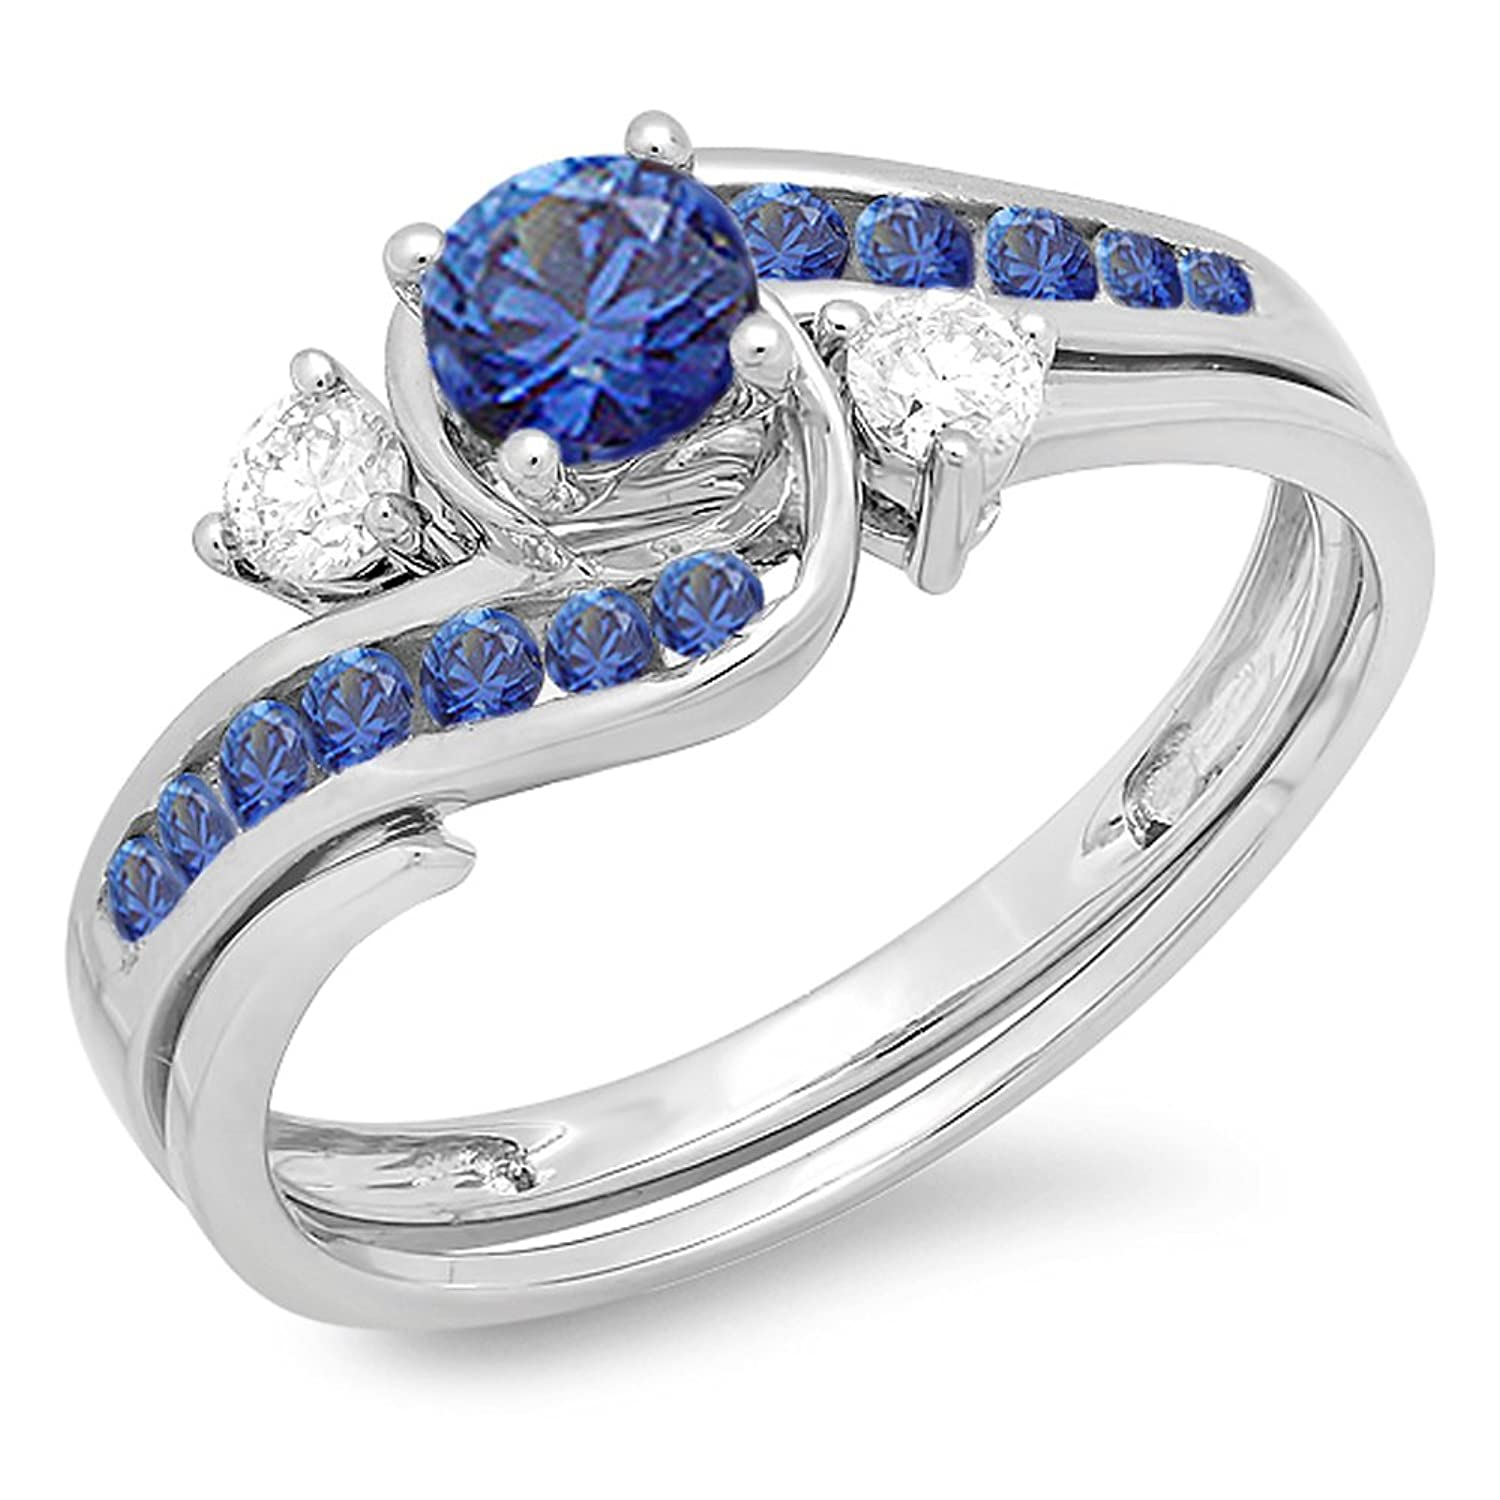 rings wedding engagement matching medium ring photo couple cz titanium set and his hers itm sapphire blue